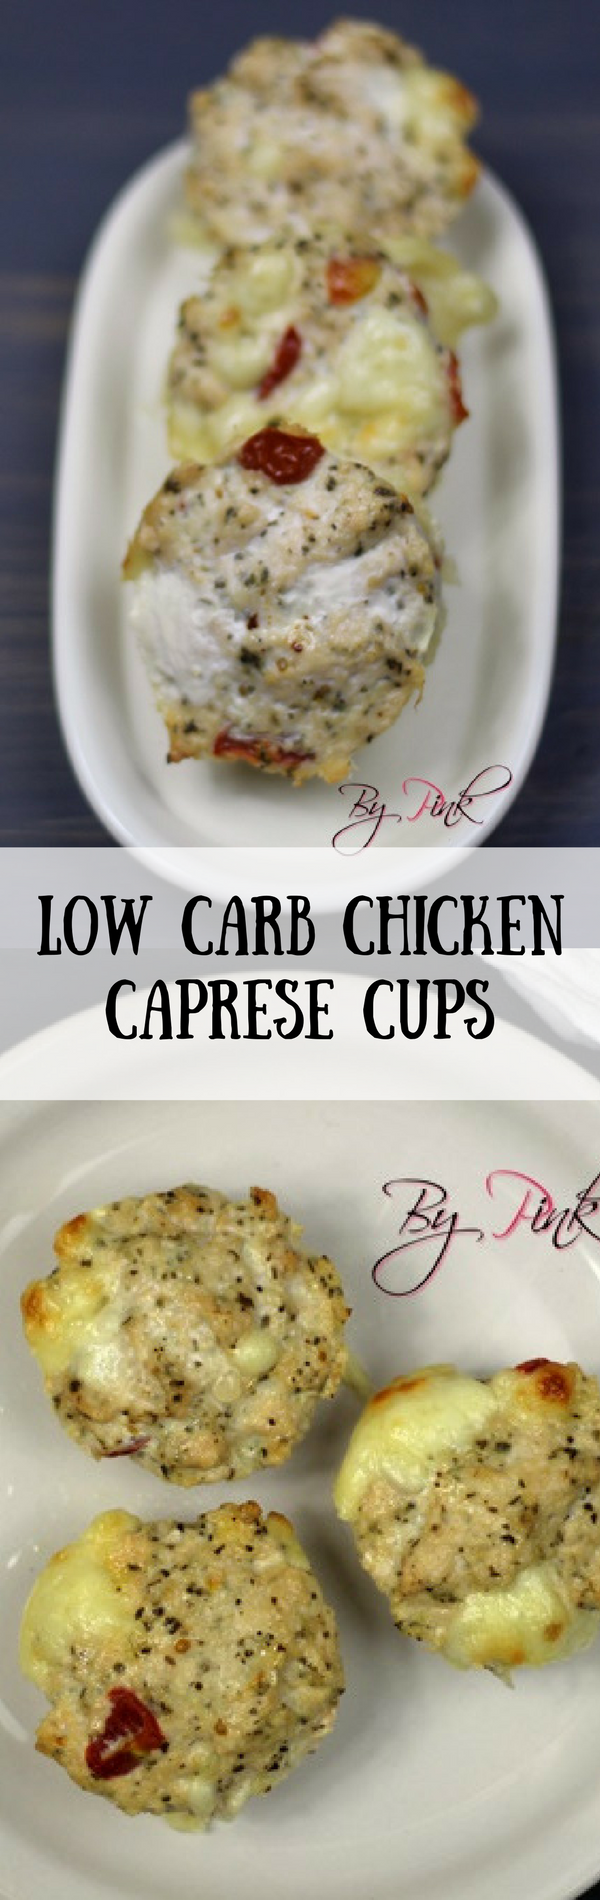 Low Carb Chicken Caprese Cups